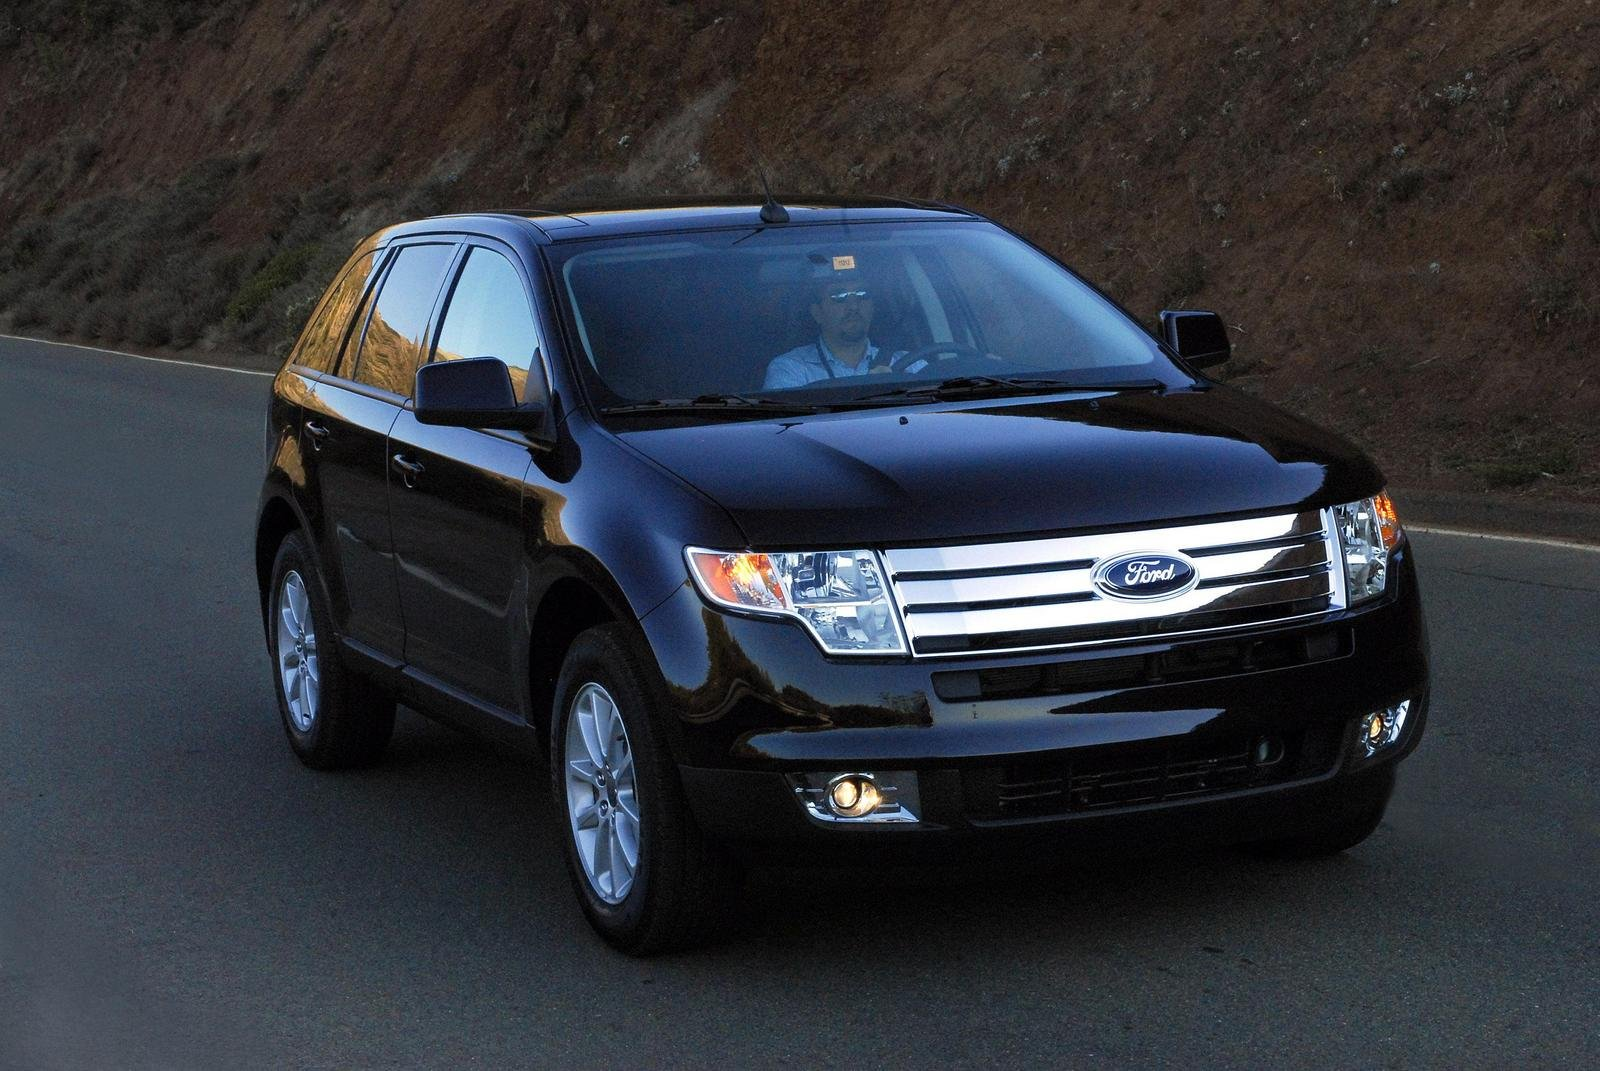 2007 ford edge picture 161916 car review top speed. Black Bedroom Furniture Sets. Home Design Ideas